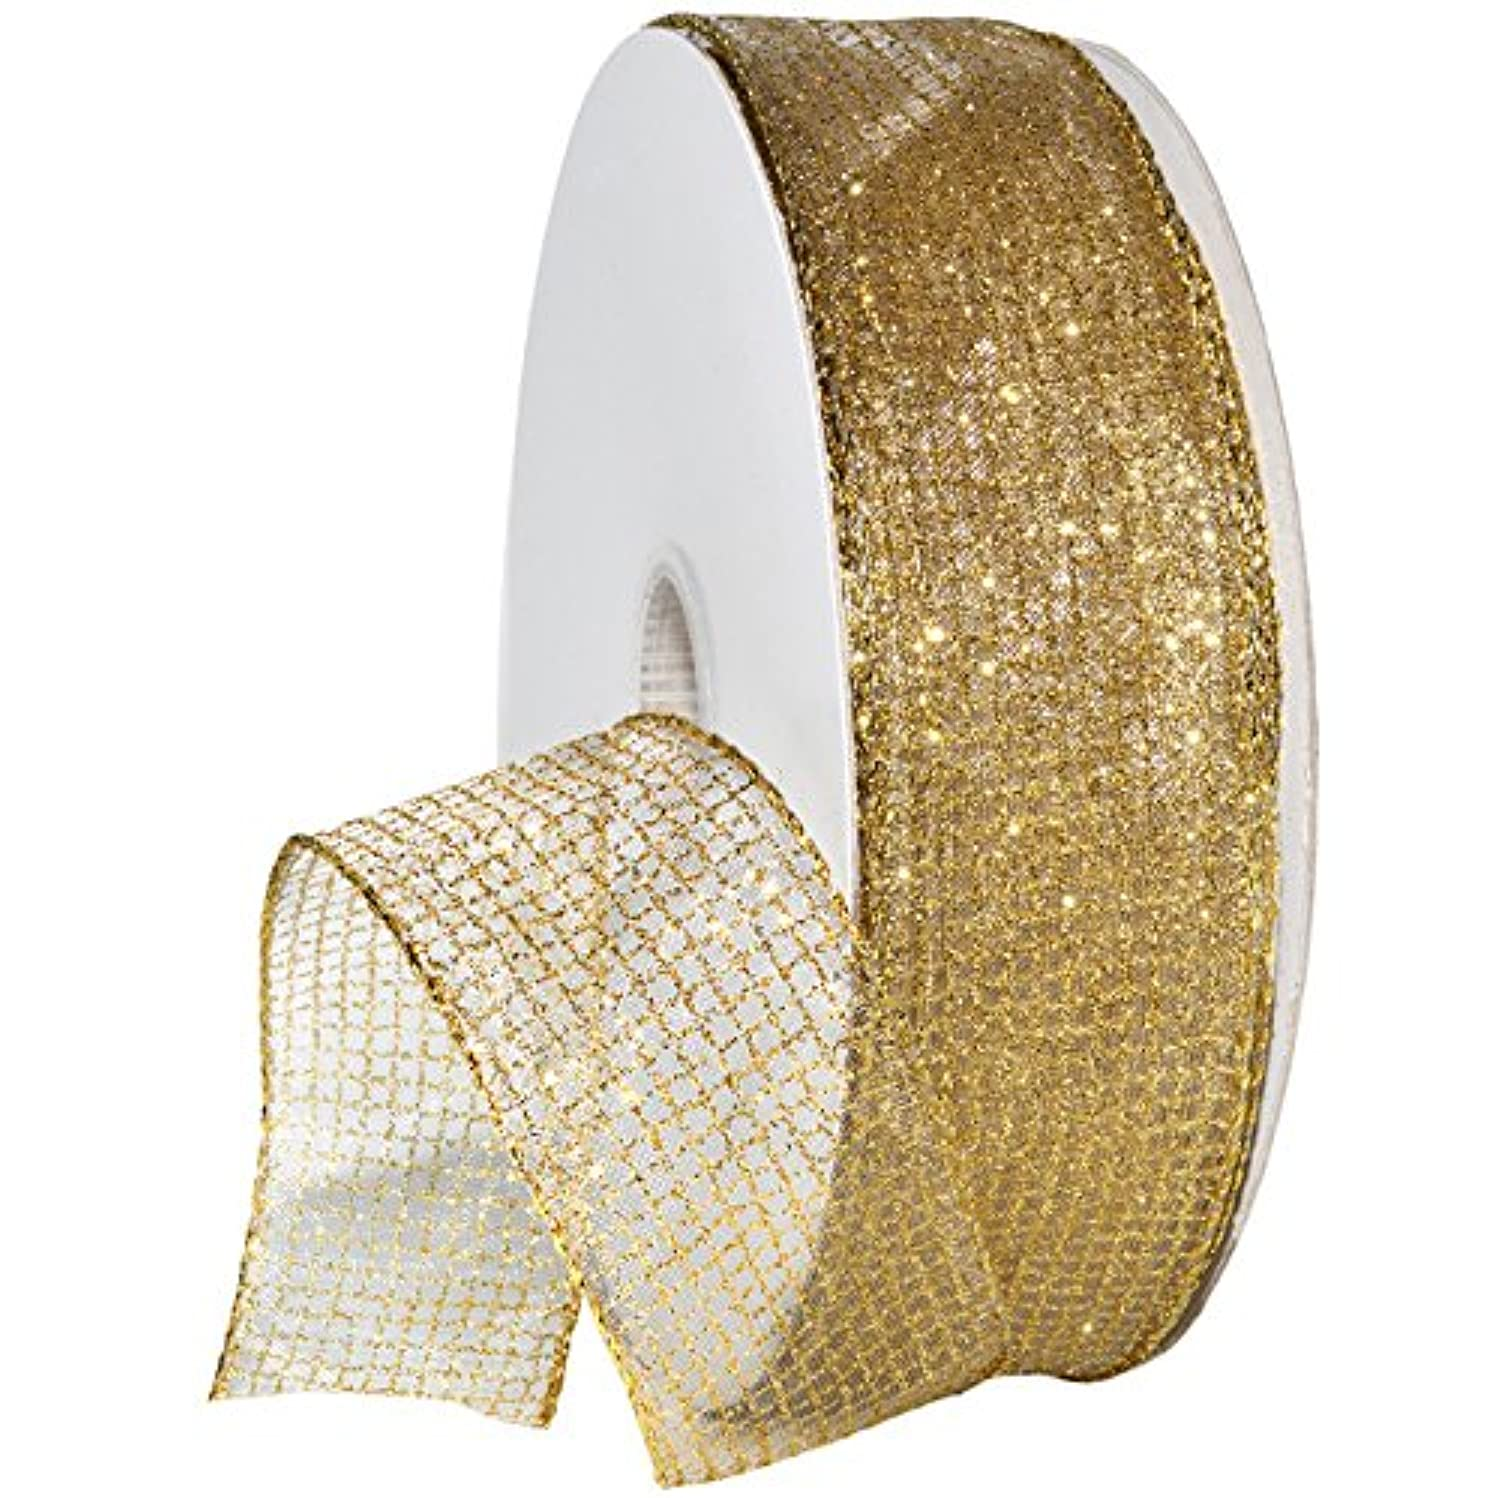 Morex Ribbon 7435 Cosmic Ribbon, Wired Organza with Glitter, 1-1/2 Inch, 50-Yard, Gold